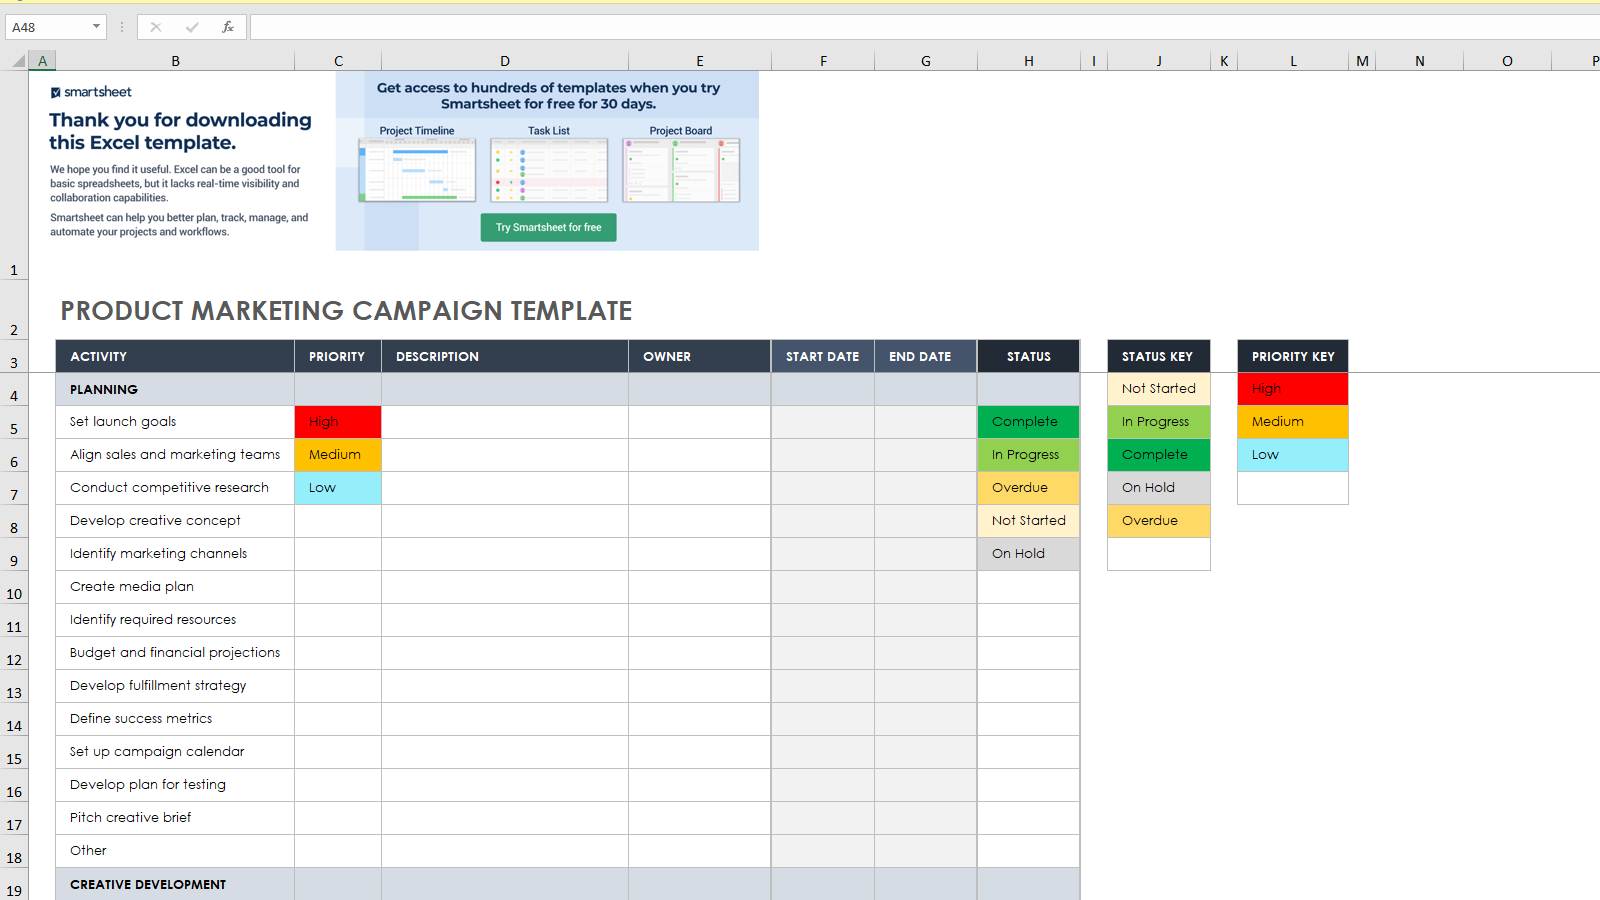 Product Marketing Campaign Template